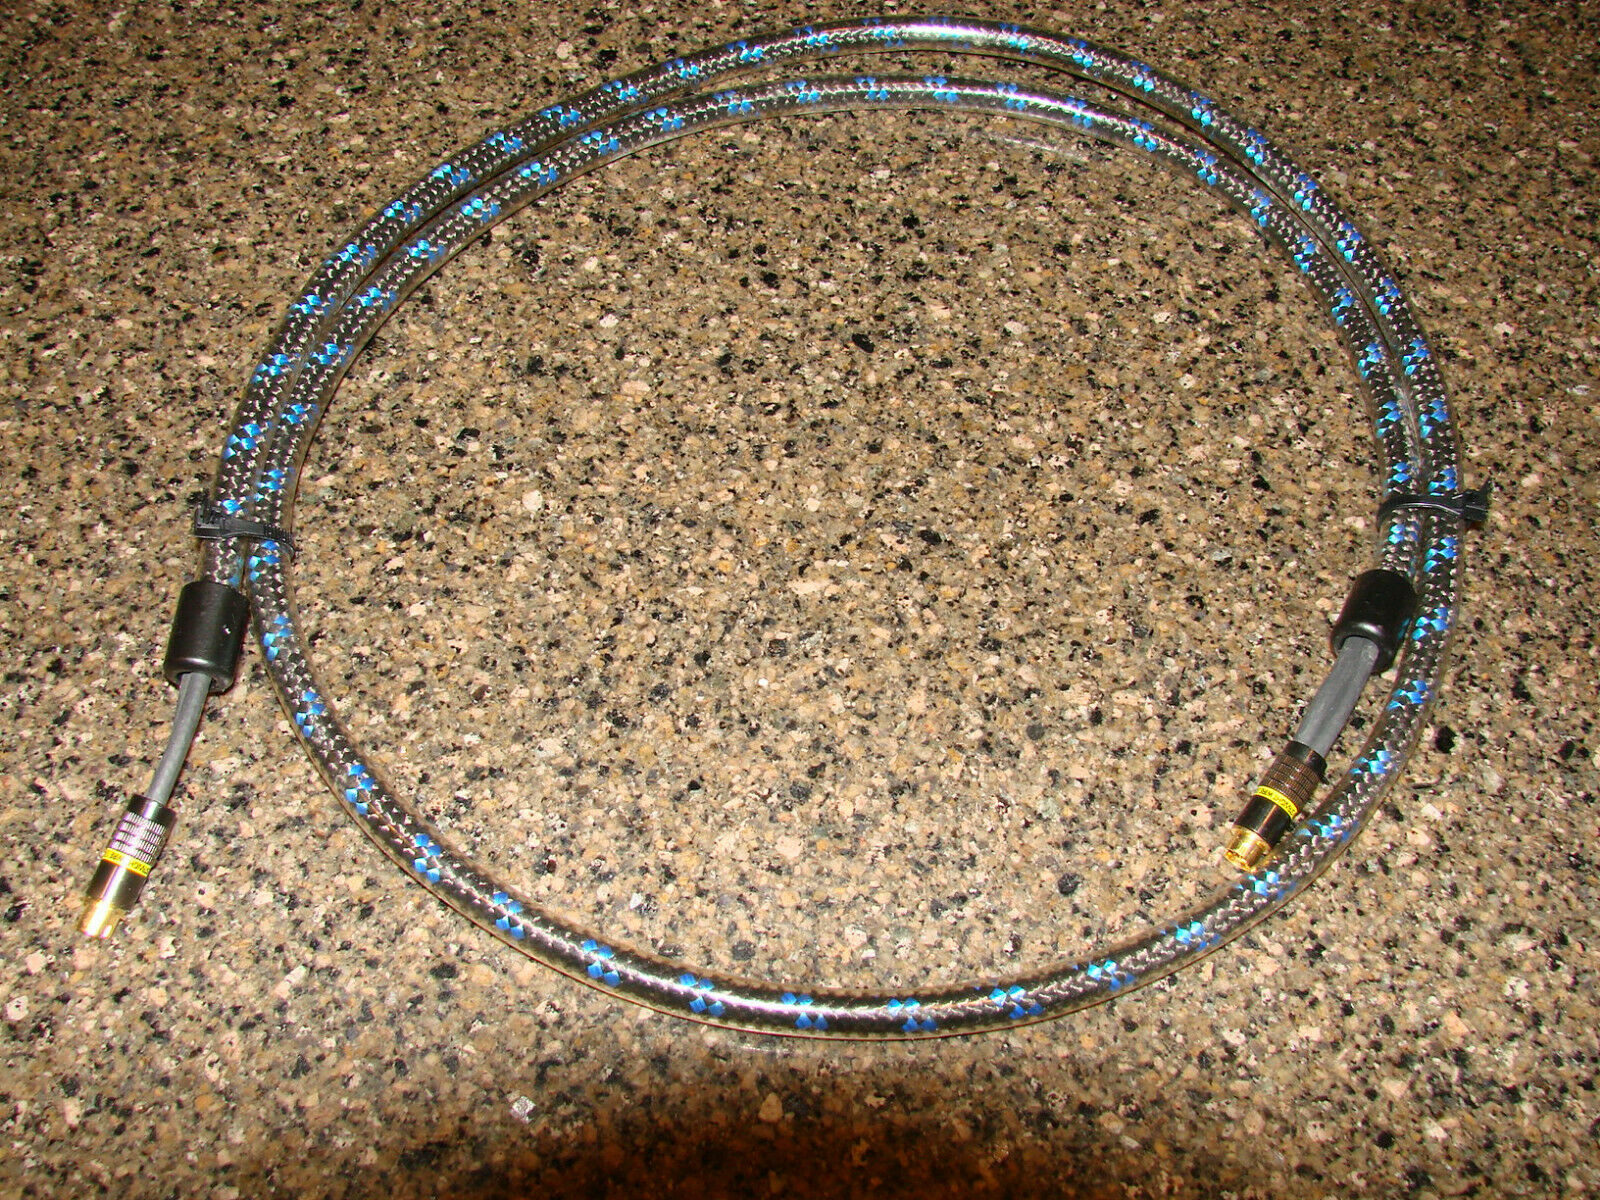 Straight Wire Mega HDS S-Video Cable, 2M Used- Great Condition - $24.99